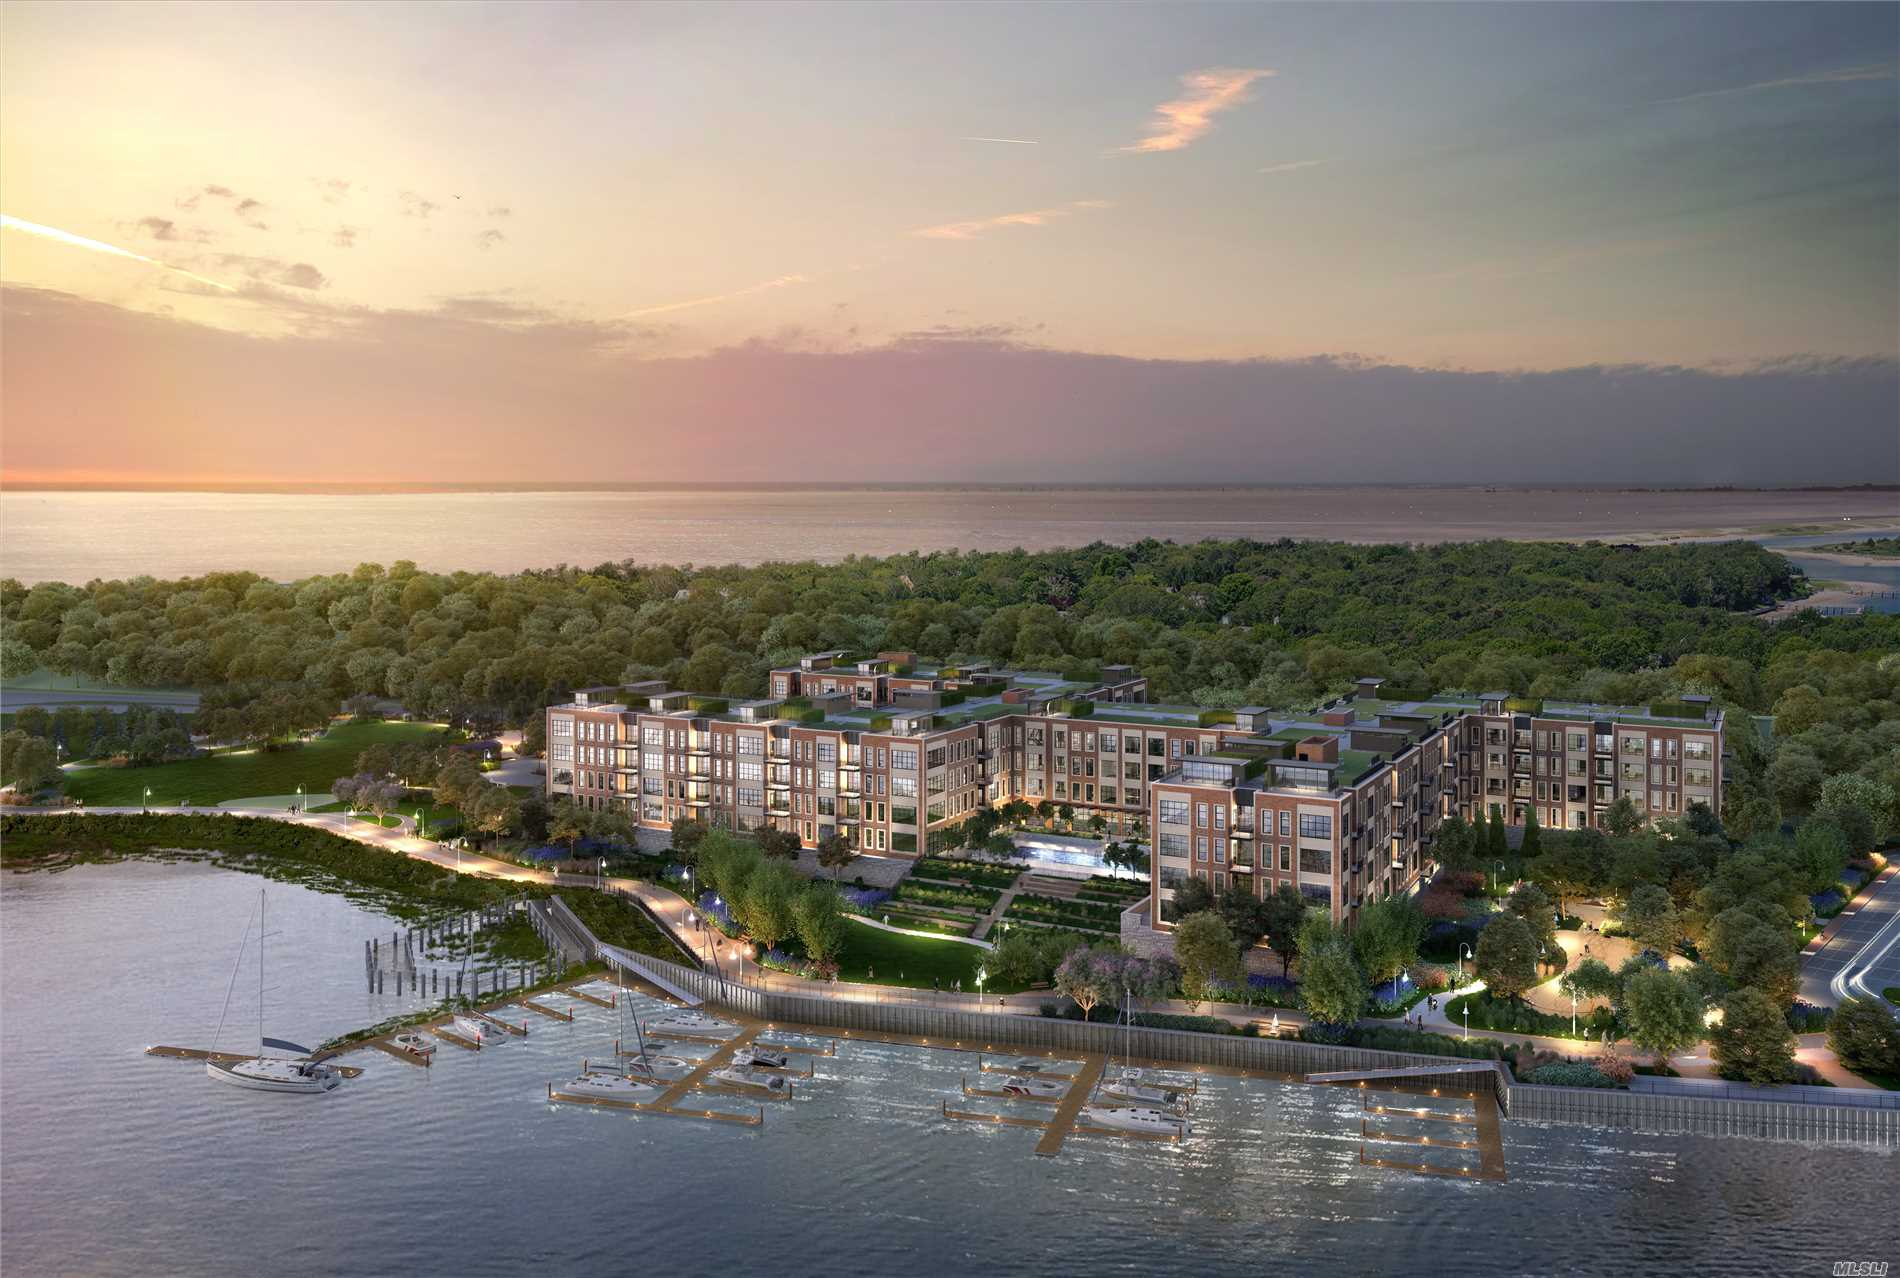 Property for sale at 100 Garvies Road Road # 1336, Glen Cove NY 11542, Glen Cove,  New York 11542